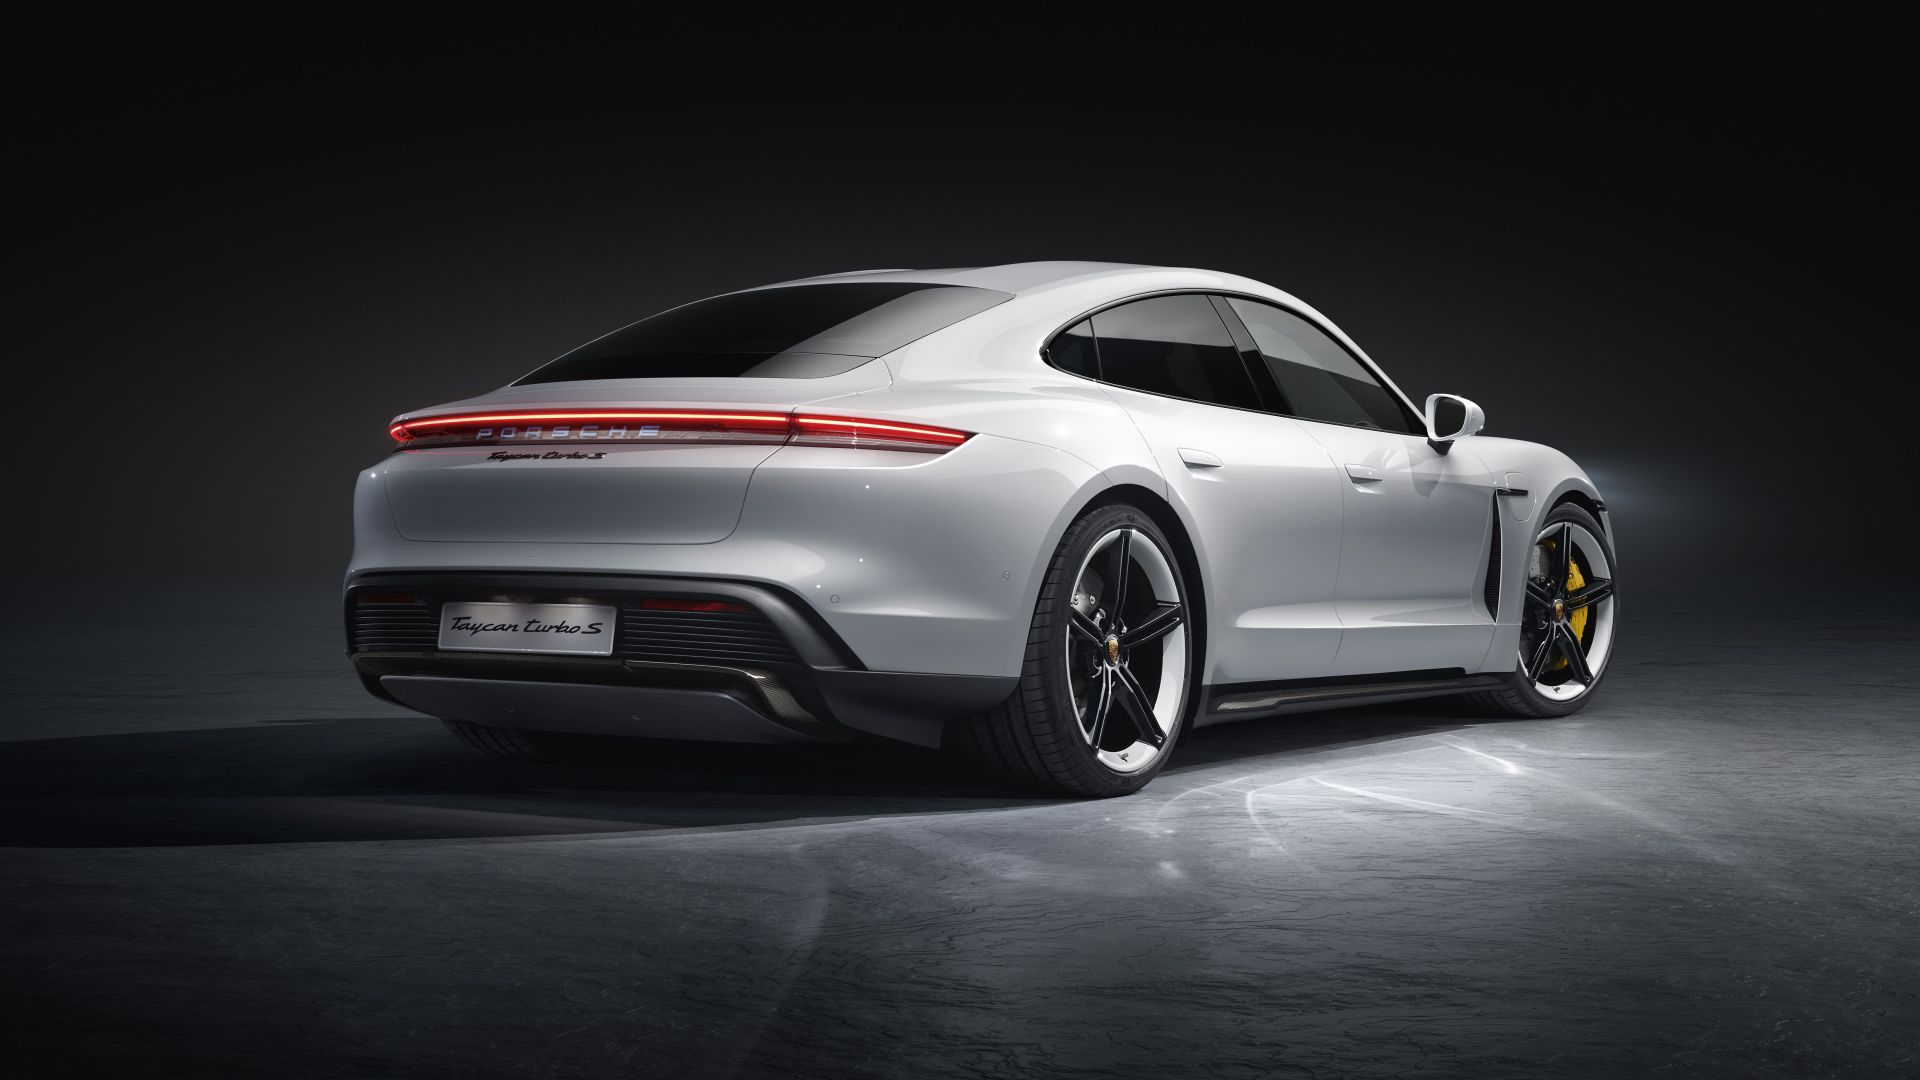 Porsche Taycan Turbo S, electric cars, 2019 cars, 5K, Porsche Taycan Turbo S, electric cars, 2019 cars, 5K (horizontal)